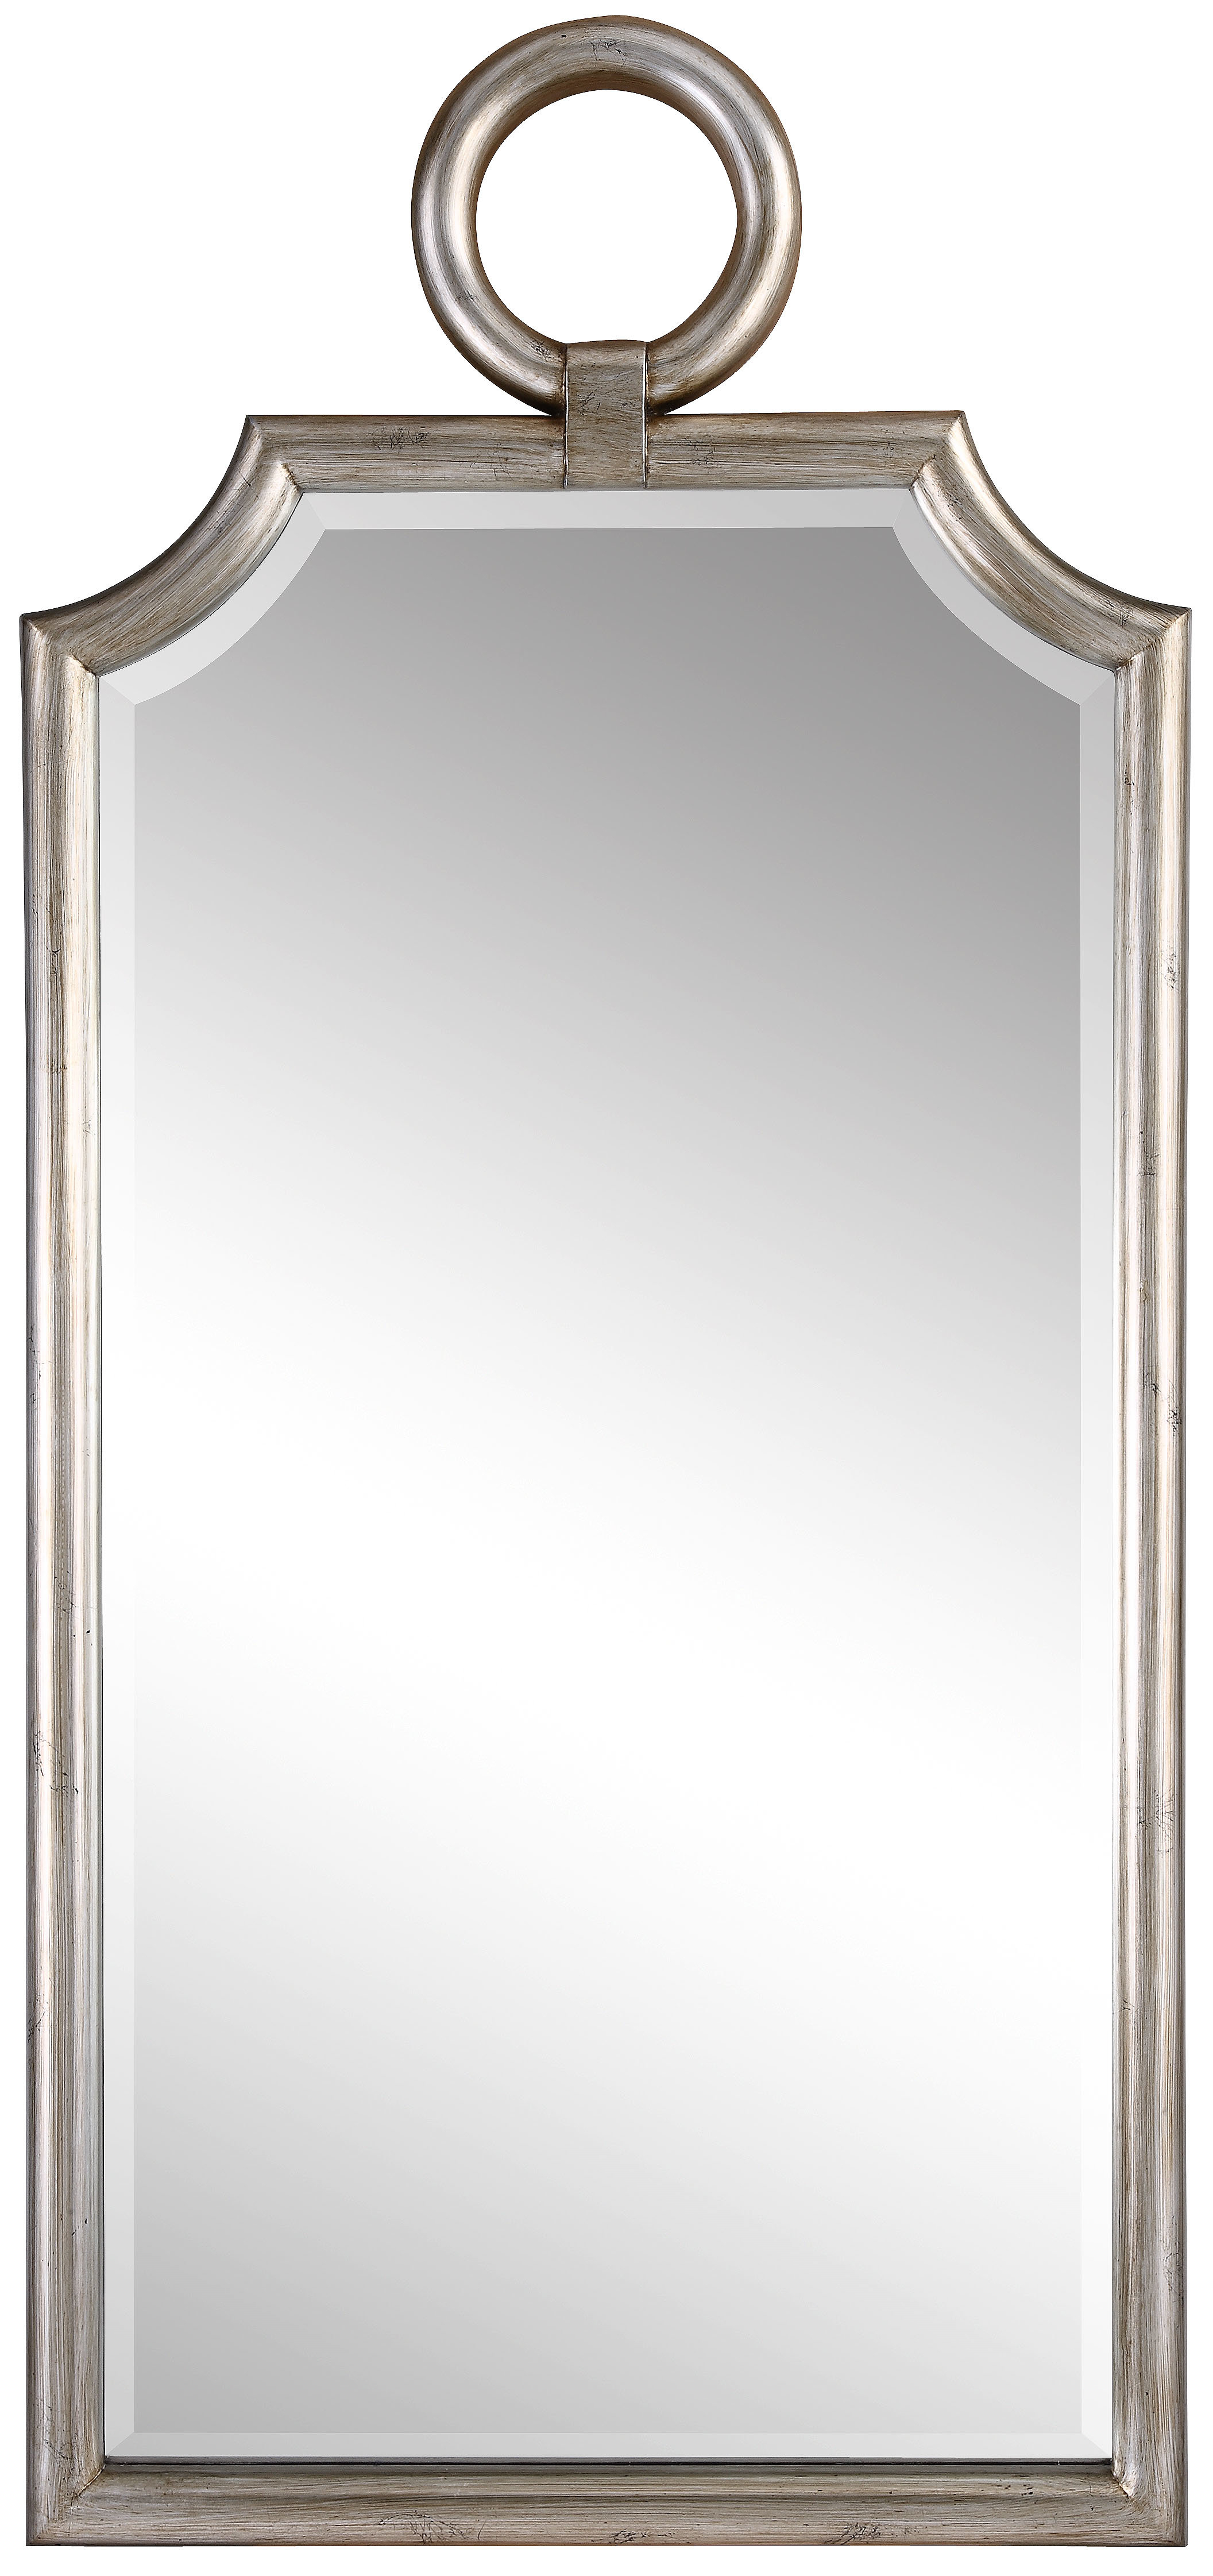 Dariel Tall Arched Scalloped Wall Mirrors Throughout 2020 Mirabel Accent Mirror (View 12 of 20)